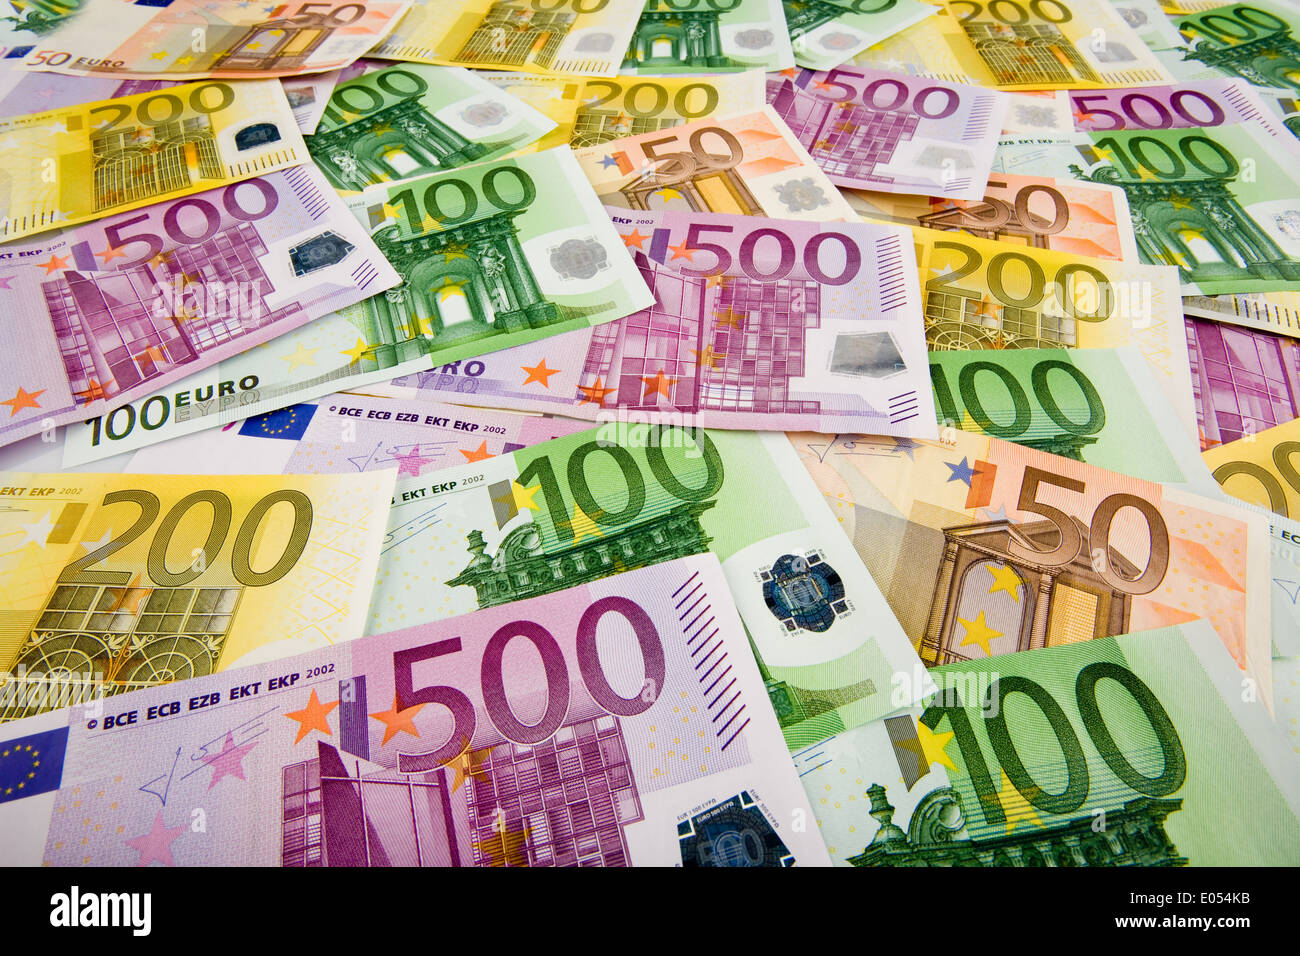 Lotto Profit Stock Photos & Lotto Profit Stock Images - Alamy